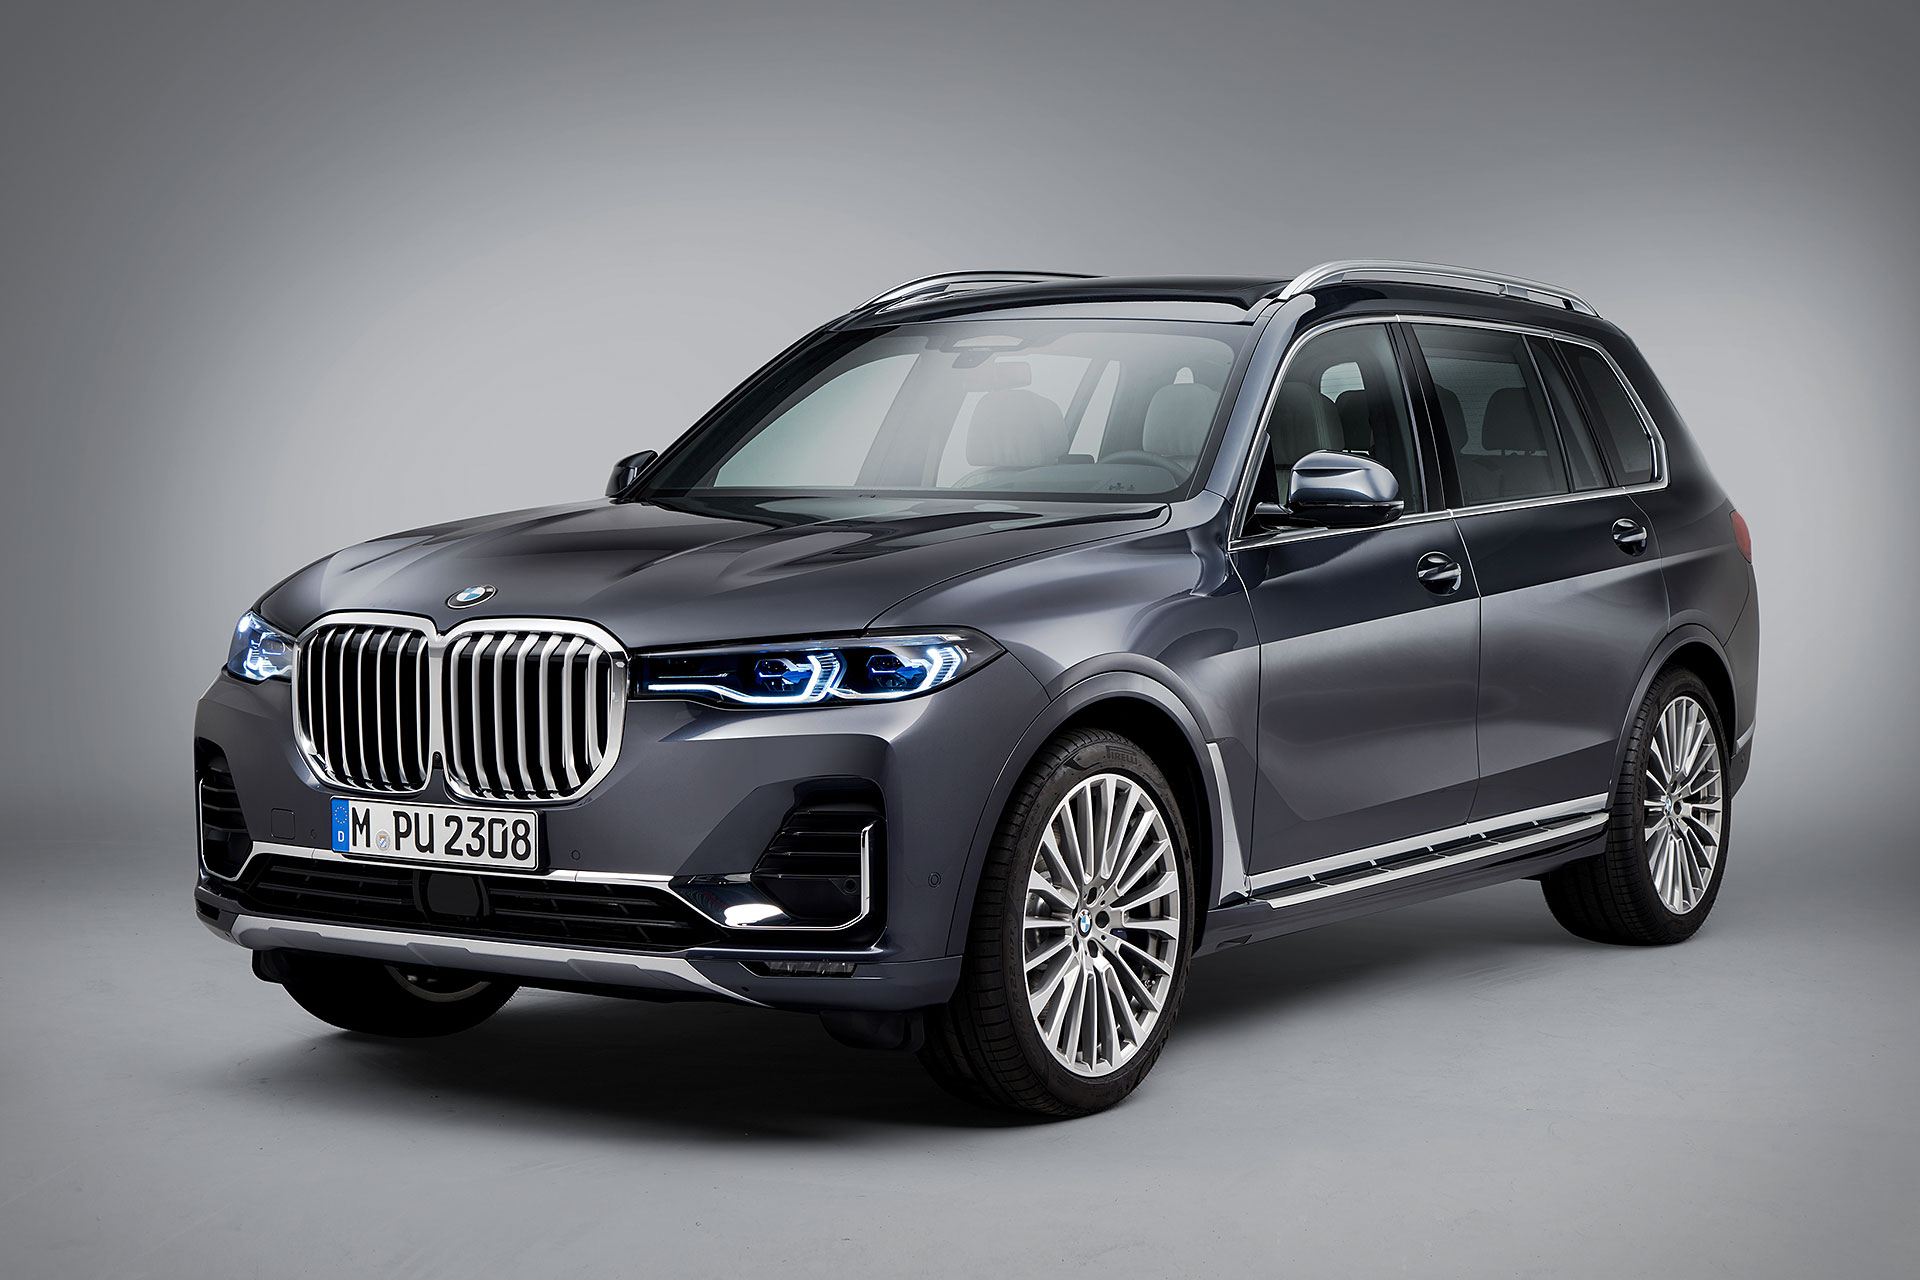 2019 BMW X7 SUV | Uncrate